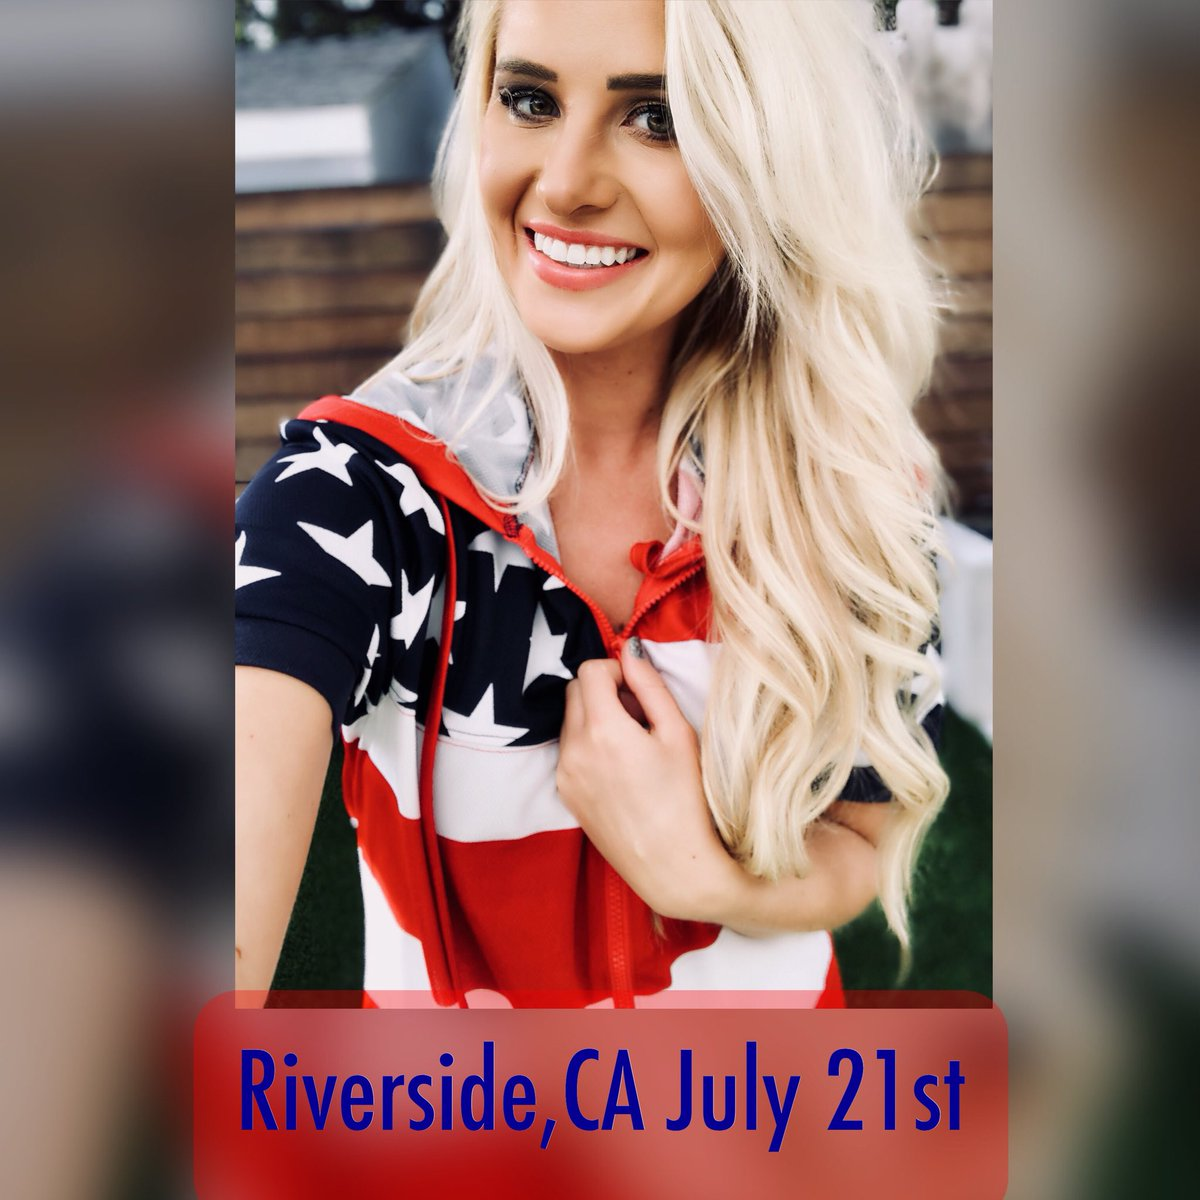 Time to take back CA! See you in July! TomiLahrenLive.com